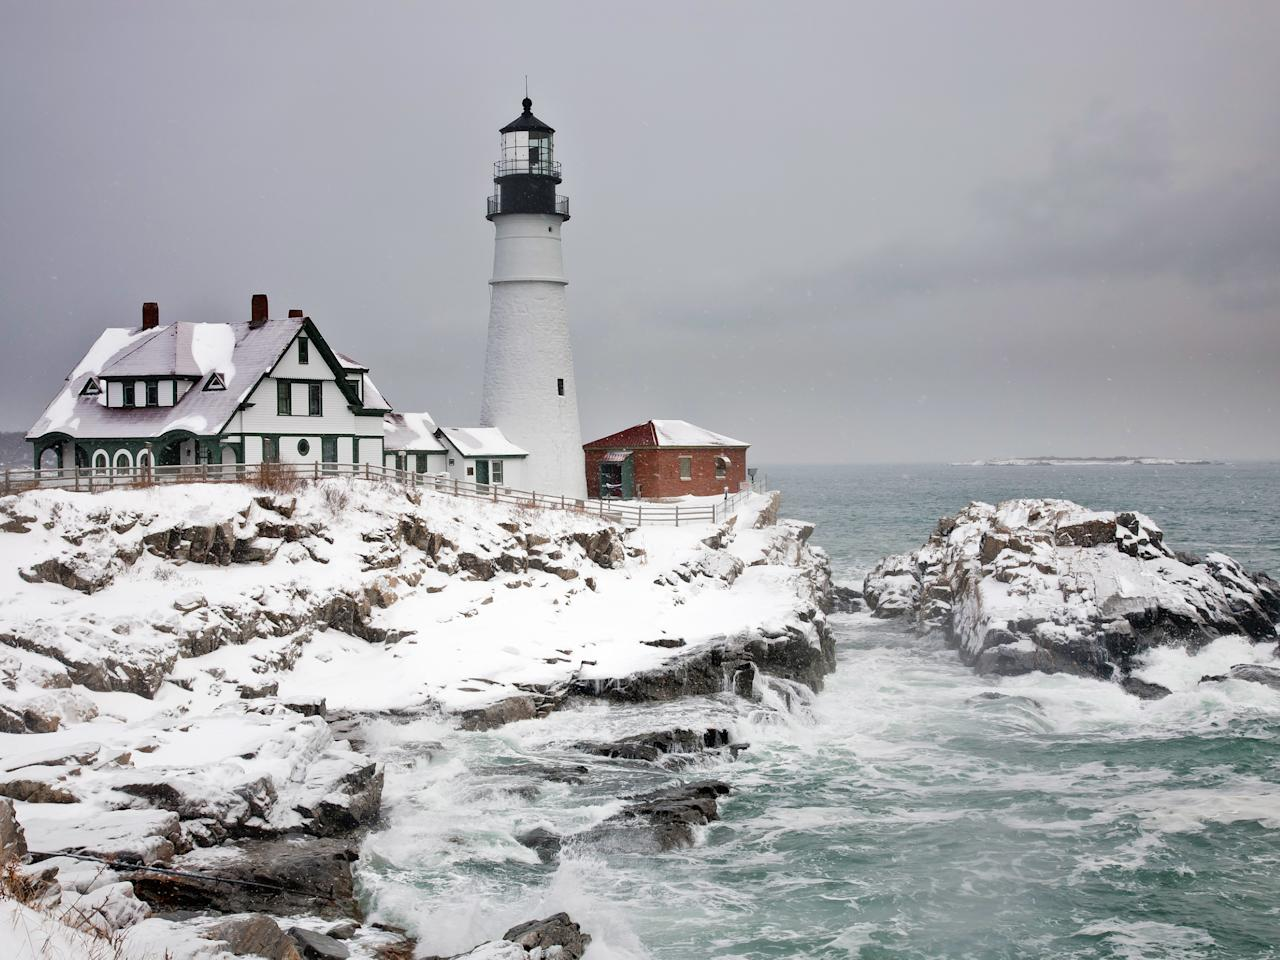 "It's important to stay busy to avoid cabin fever during New England winters (see: any Stephen King novel); luckily, cities like <a rel=""nofollow"" href=""https://www.cntraveler.com/story/how-portland-maine-keeps-getting-cooler?mbid=synd_yahoo_rss"">Portland</a> make getting outside downright appealing. The city—the most populous in Maine—comes alive with activities during the winter, from cross-country skiing to ice skating on Deering Oaks Pond. Get there in late January to participate in Winterfest (January 25-28), a well-known annual festival that includes horse-drawn carriage rides, s'mores around fire pits, cardboard sledding, and food trucks."